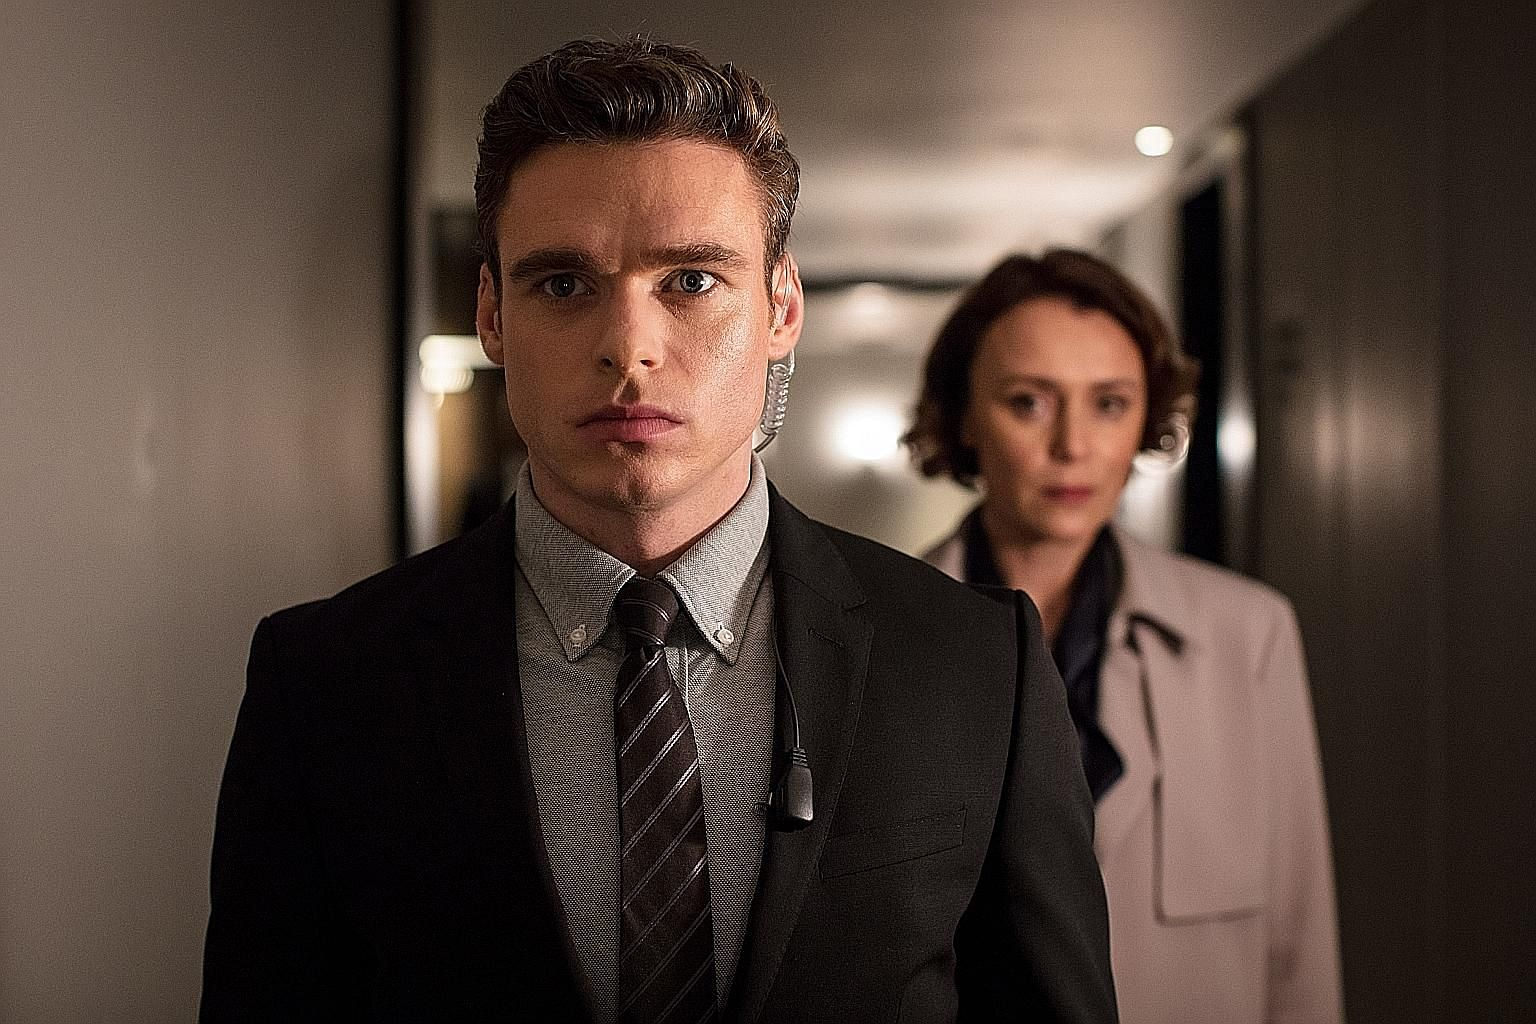 Kiernan Shipka (left) plays the titular adolescent spell-weaver in Chilling Adventures Of Sabrina. In Bodyguard, Richard Madden has to protect the home secretary played by Keeley Hawes (both above).